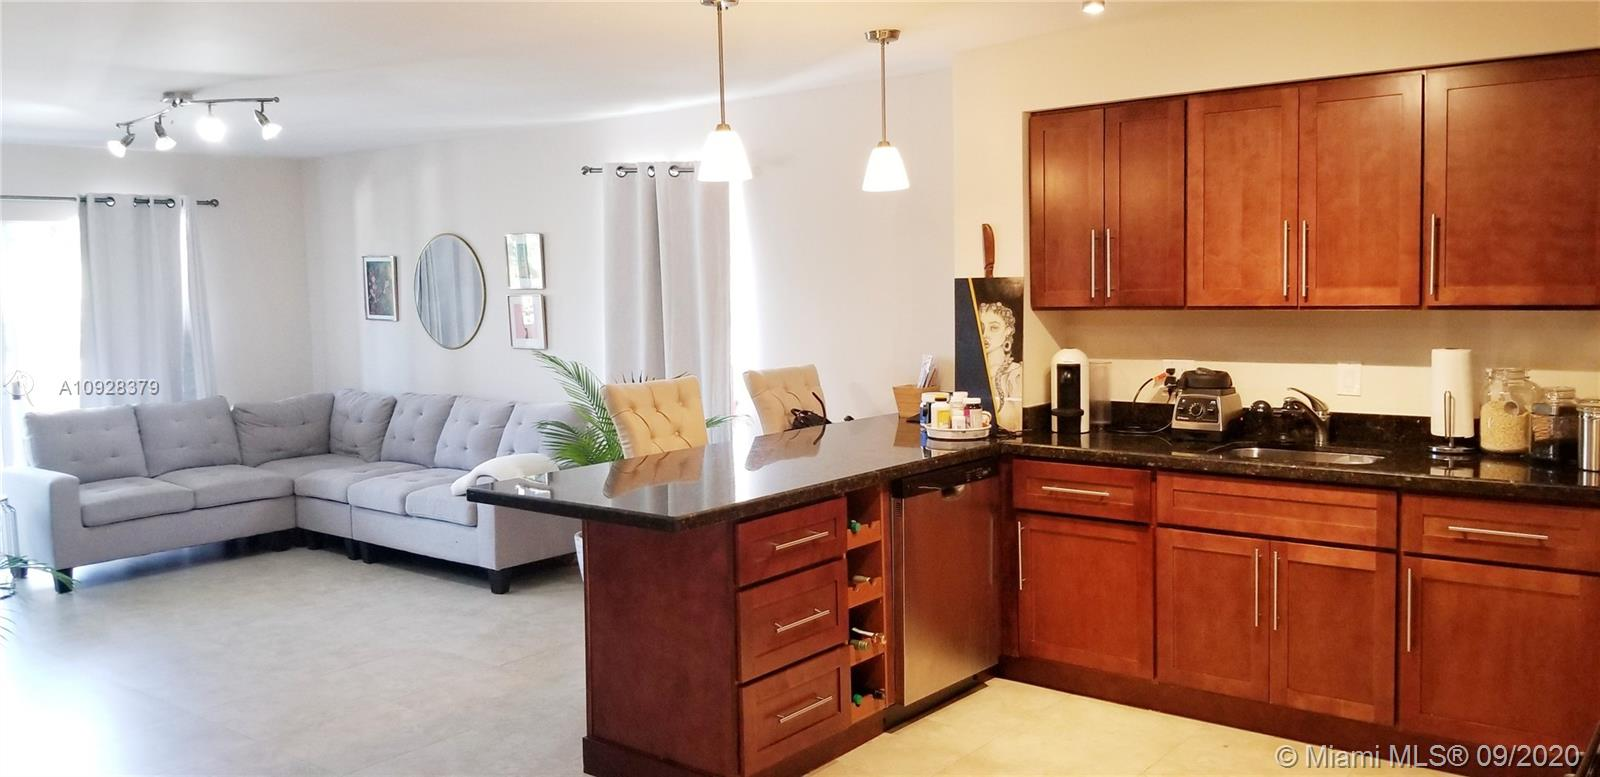 6886 N Kendall Dr #D202 For Sale A10928379, FL